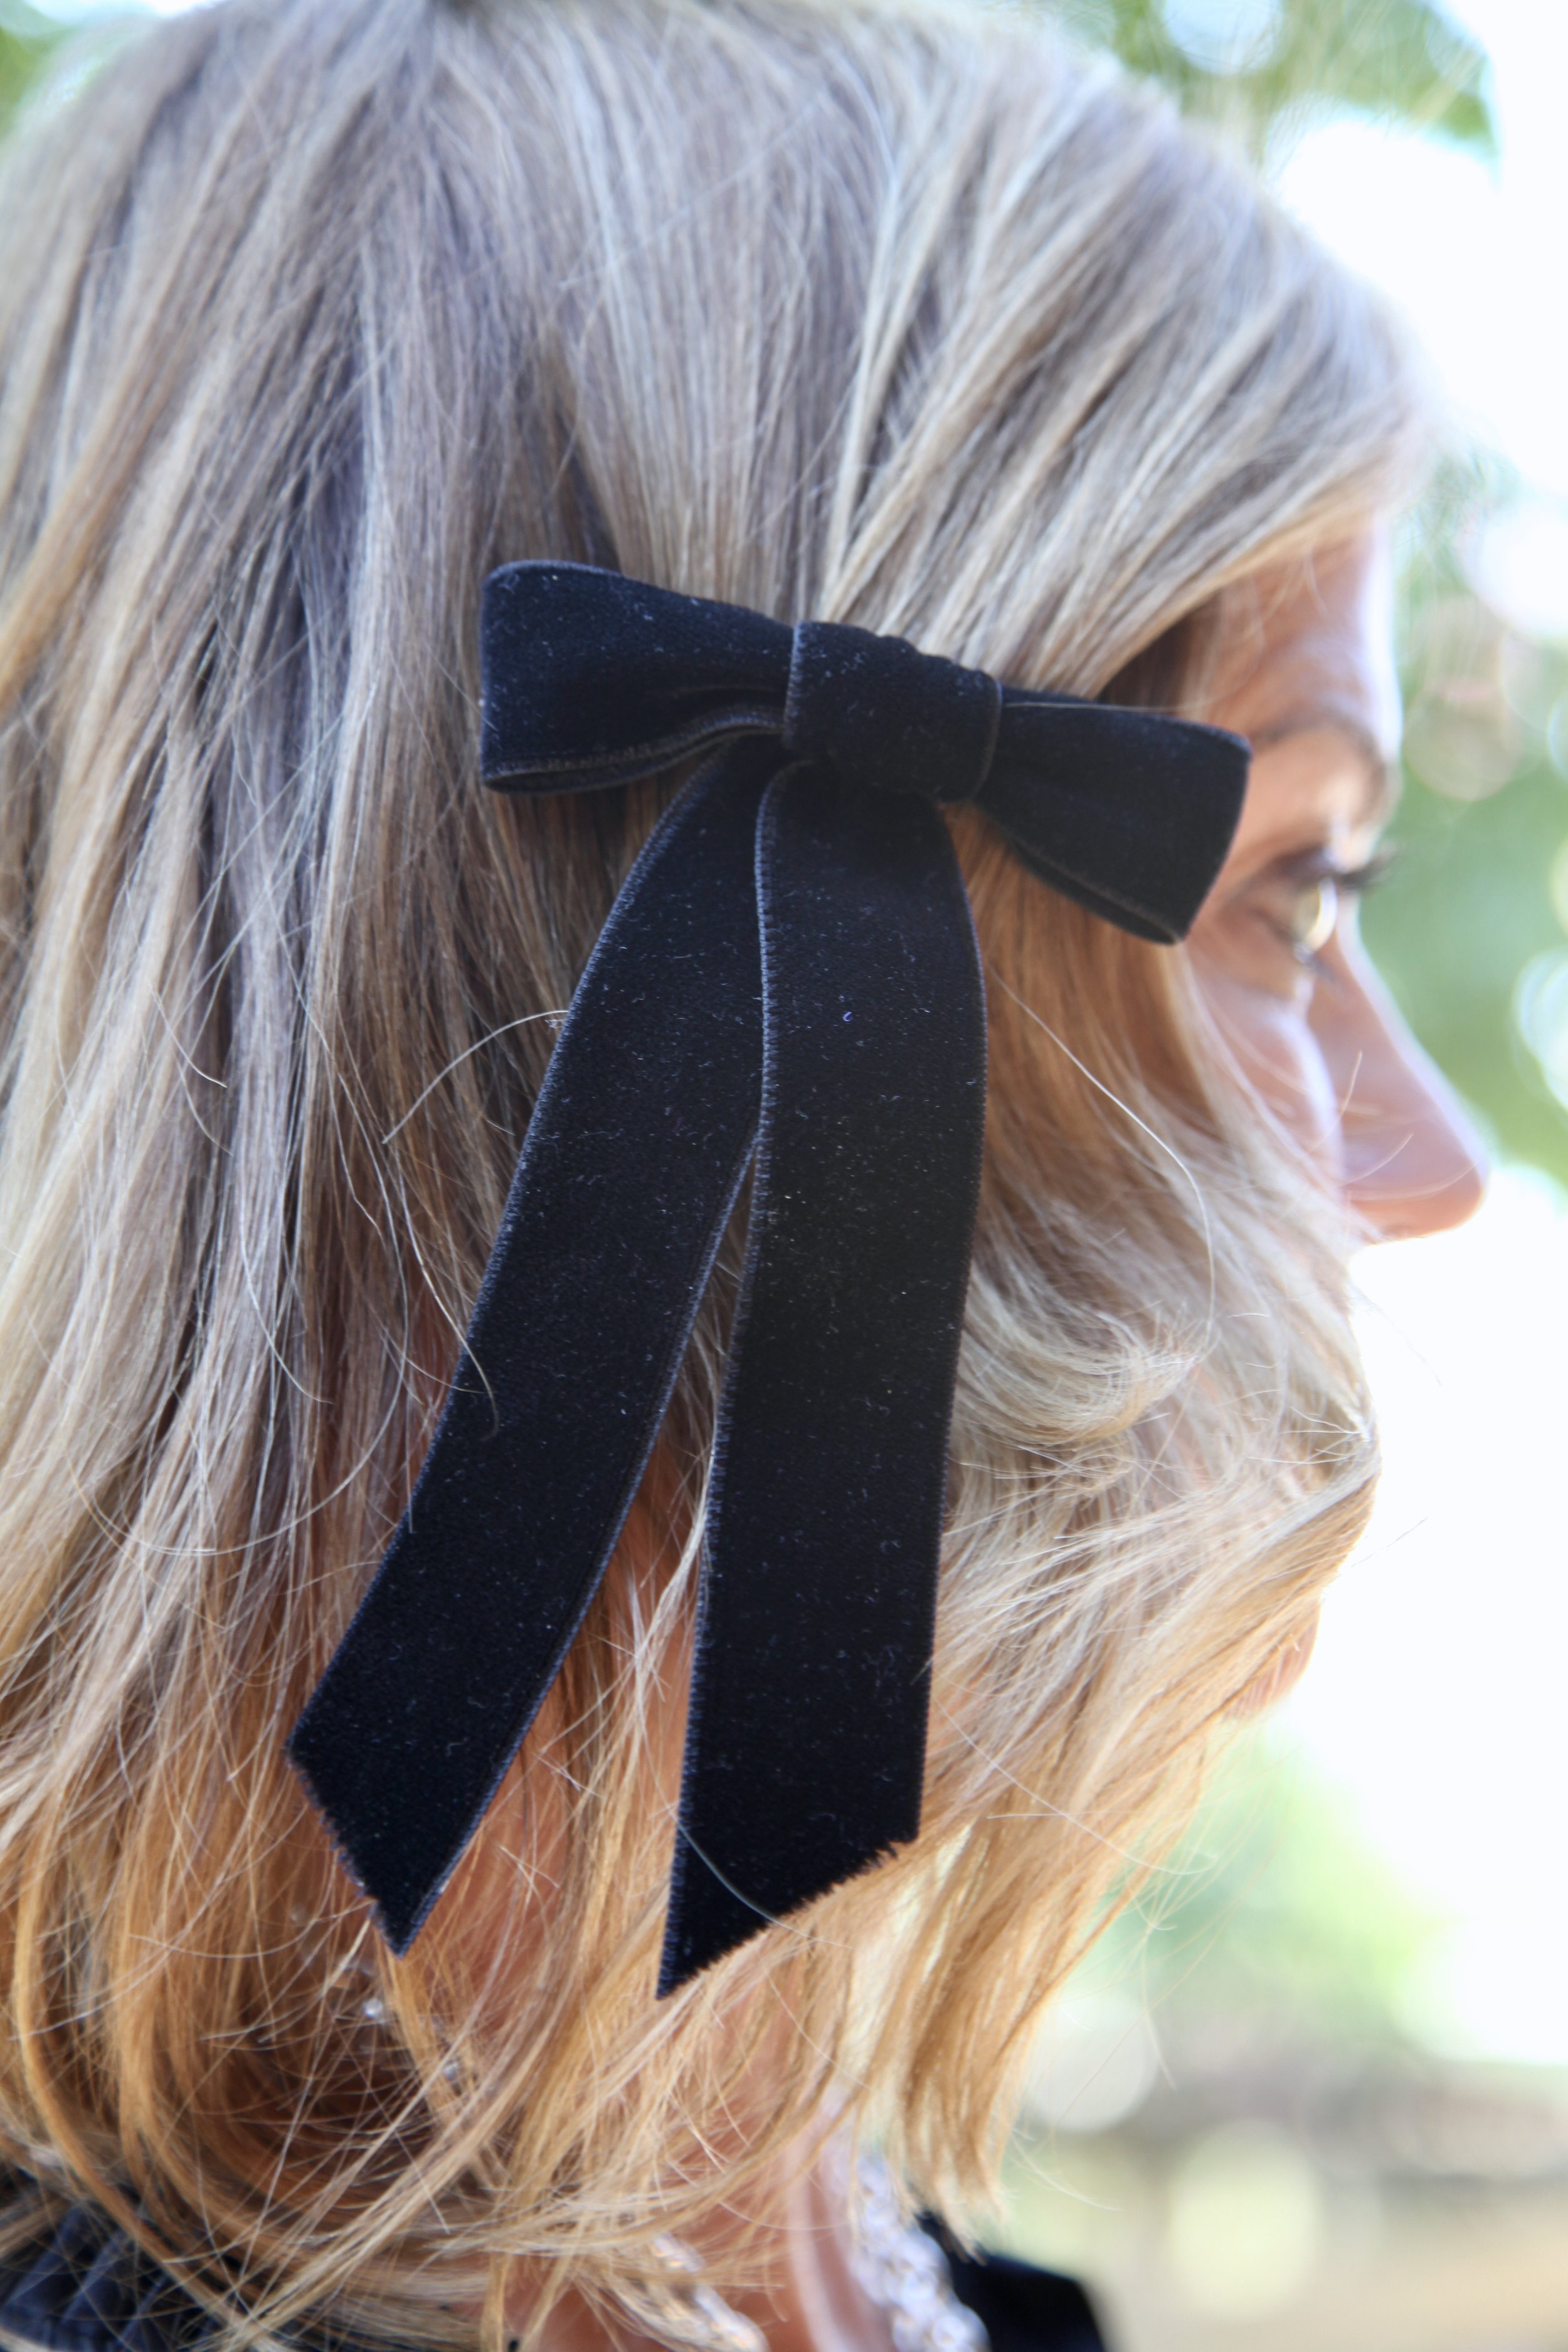 Pull back bangs with a small velvet bow or tie your hair away from your face with a simple twist.